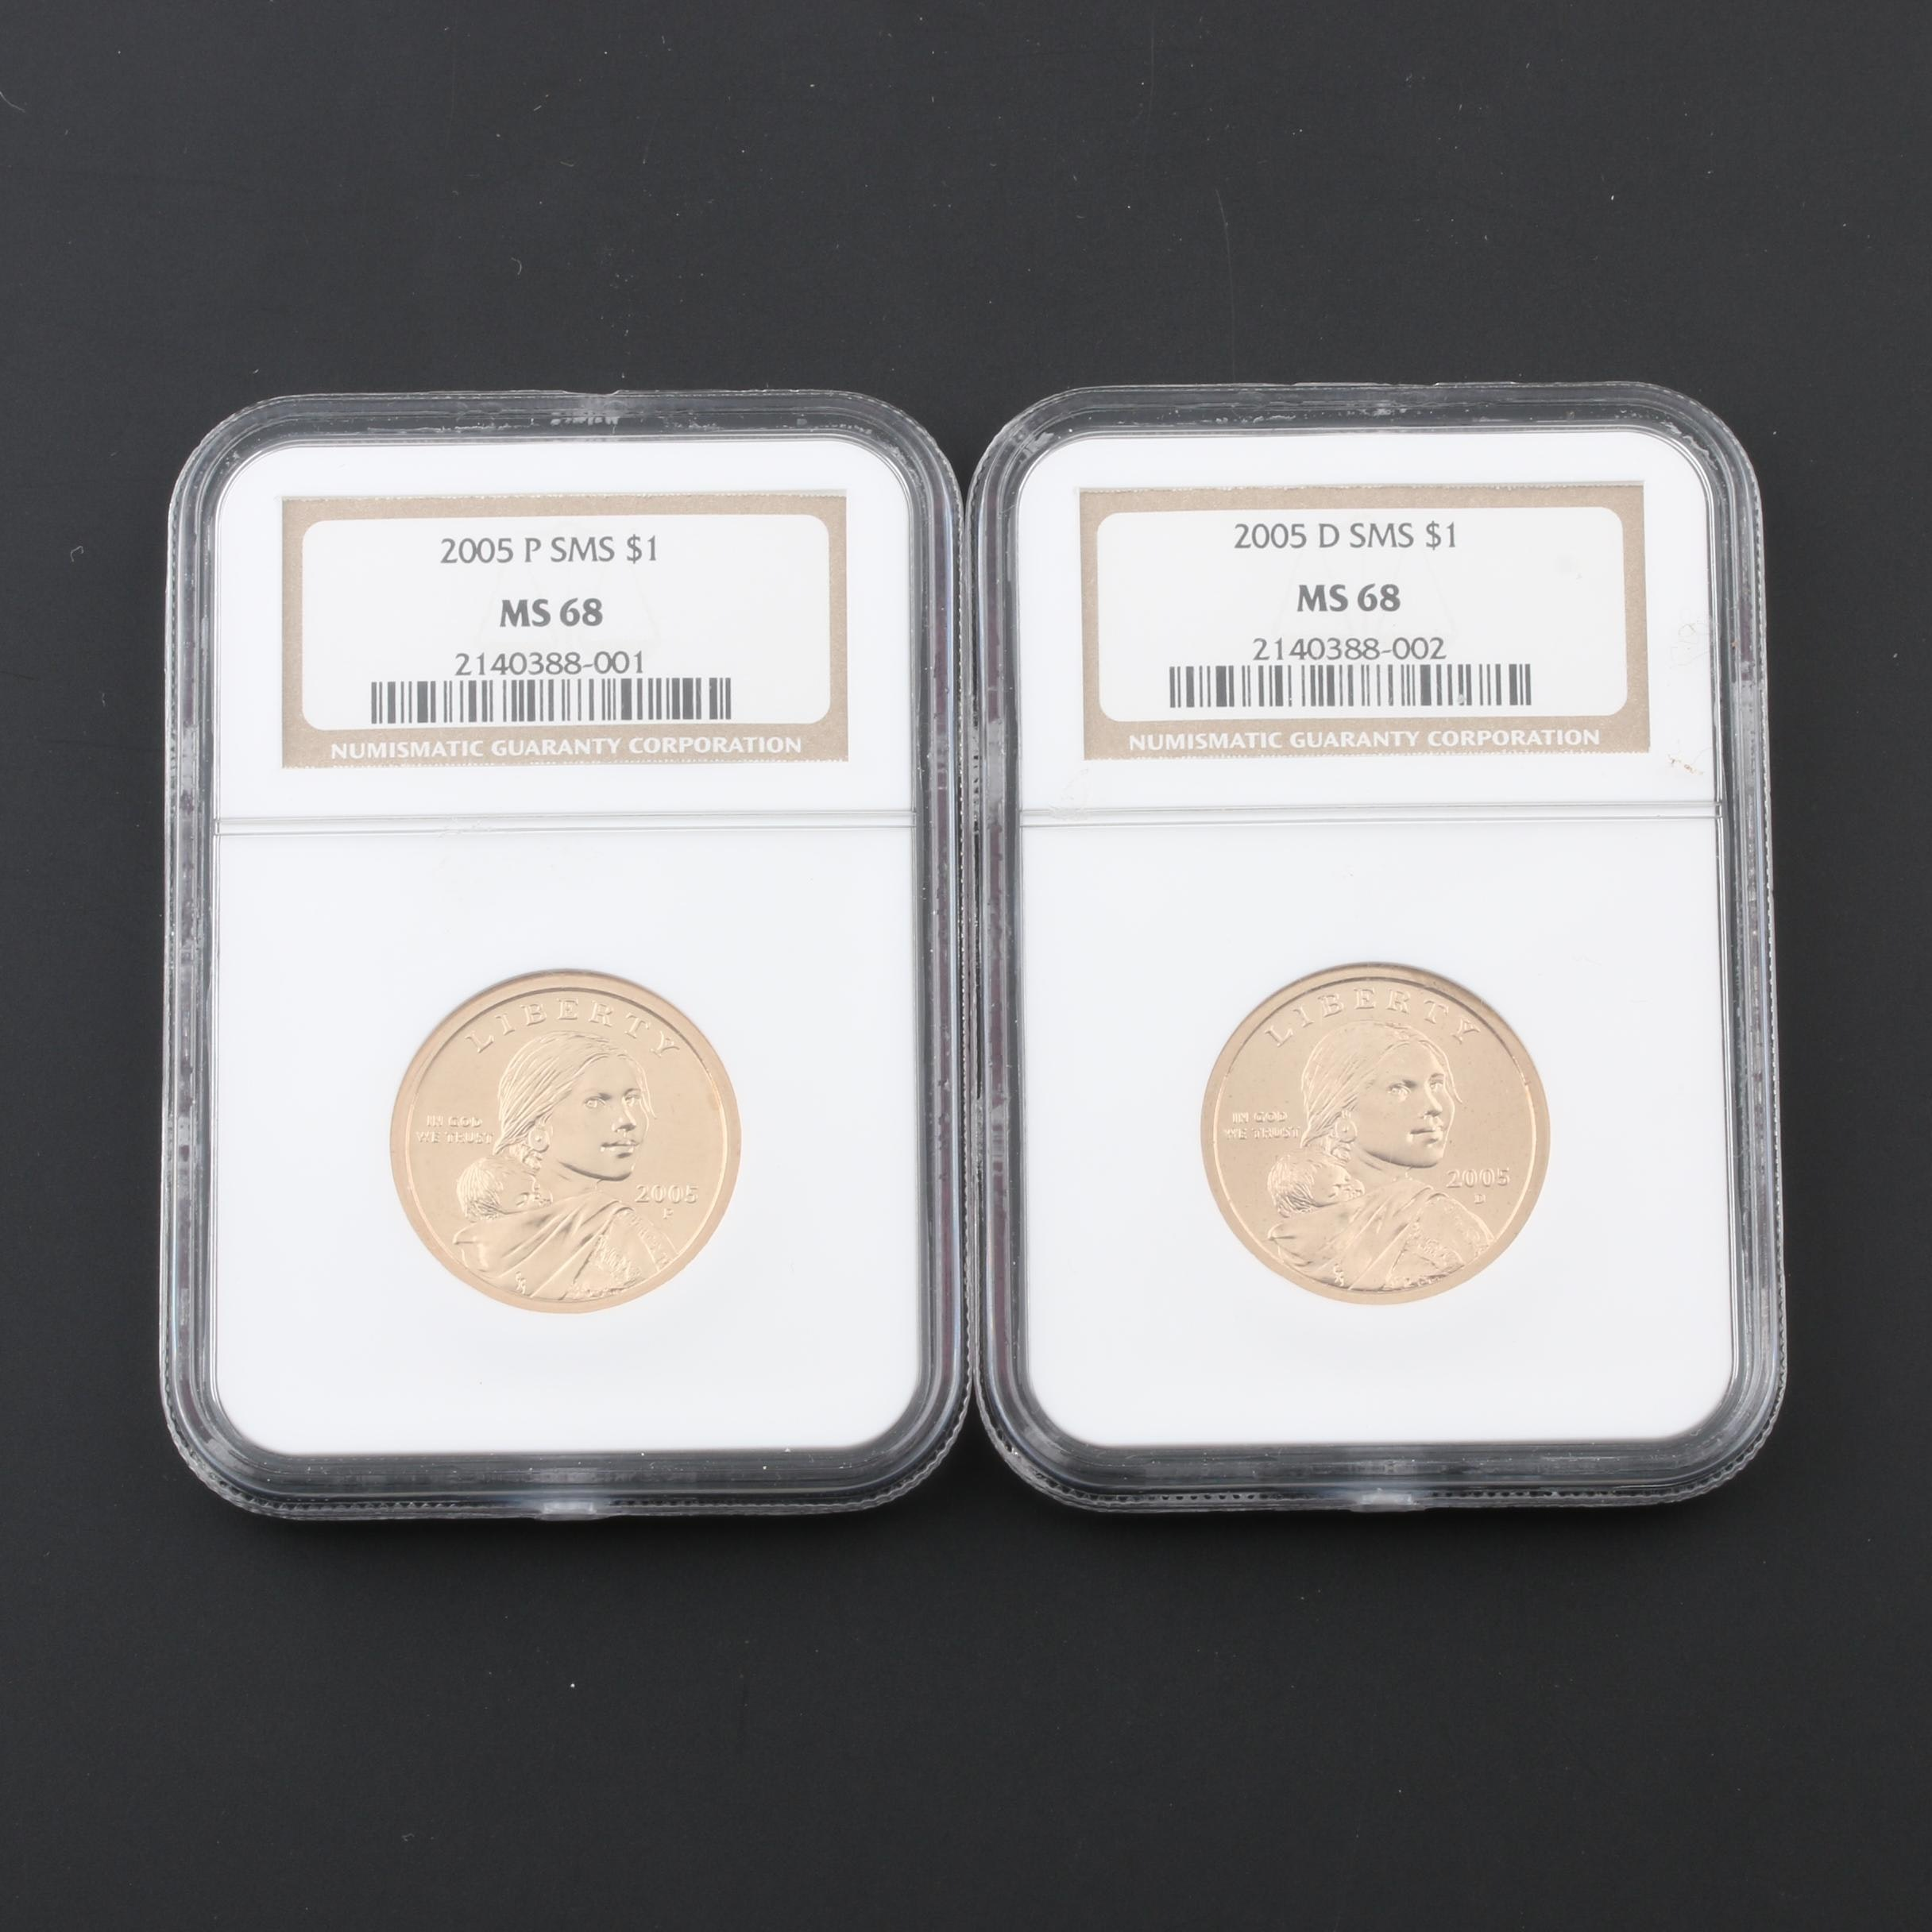 Two NGC Graded MS68 Sacagawea Dollars